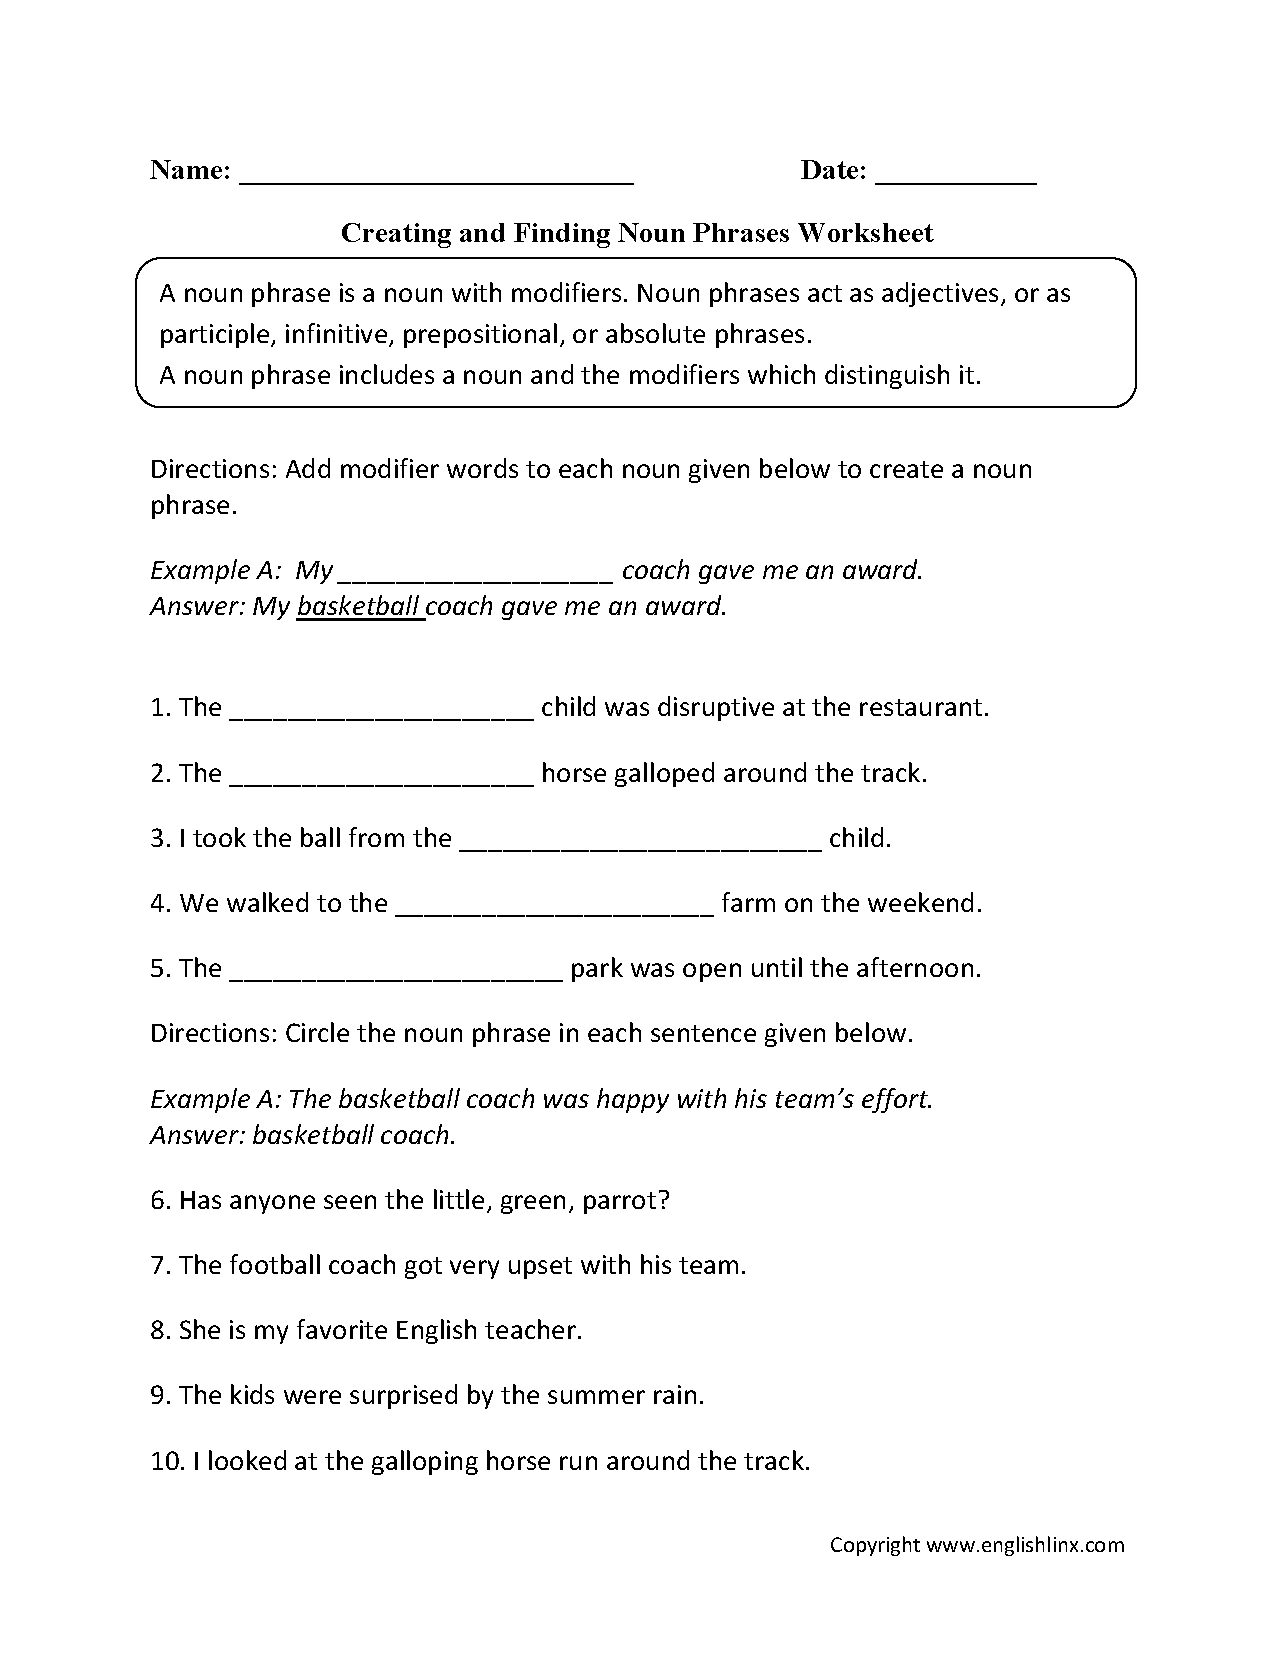 small resolution of Creating and Finding Noun Phrases Worksheets   Nouns worksheet